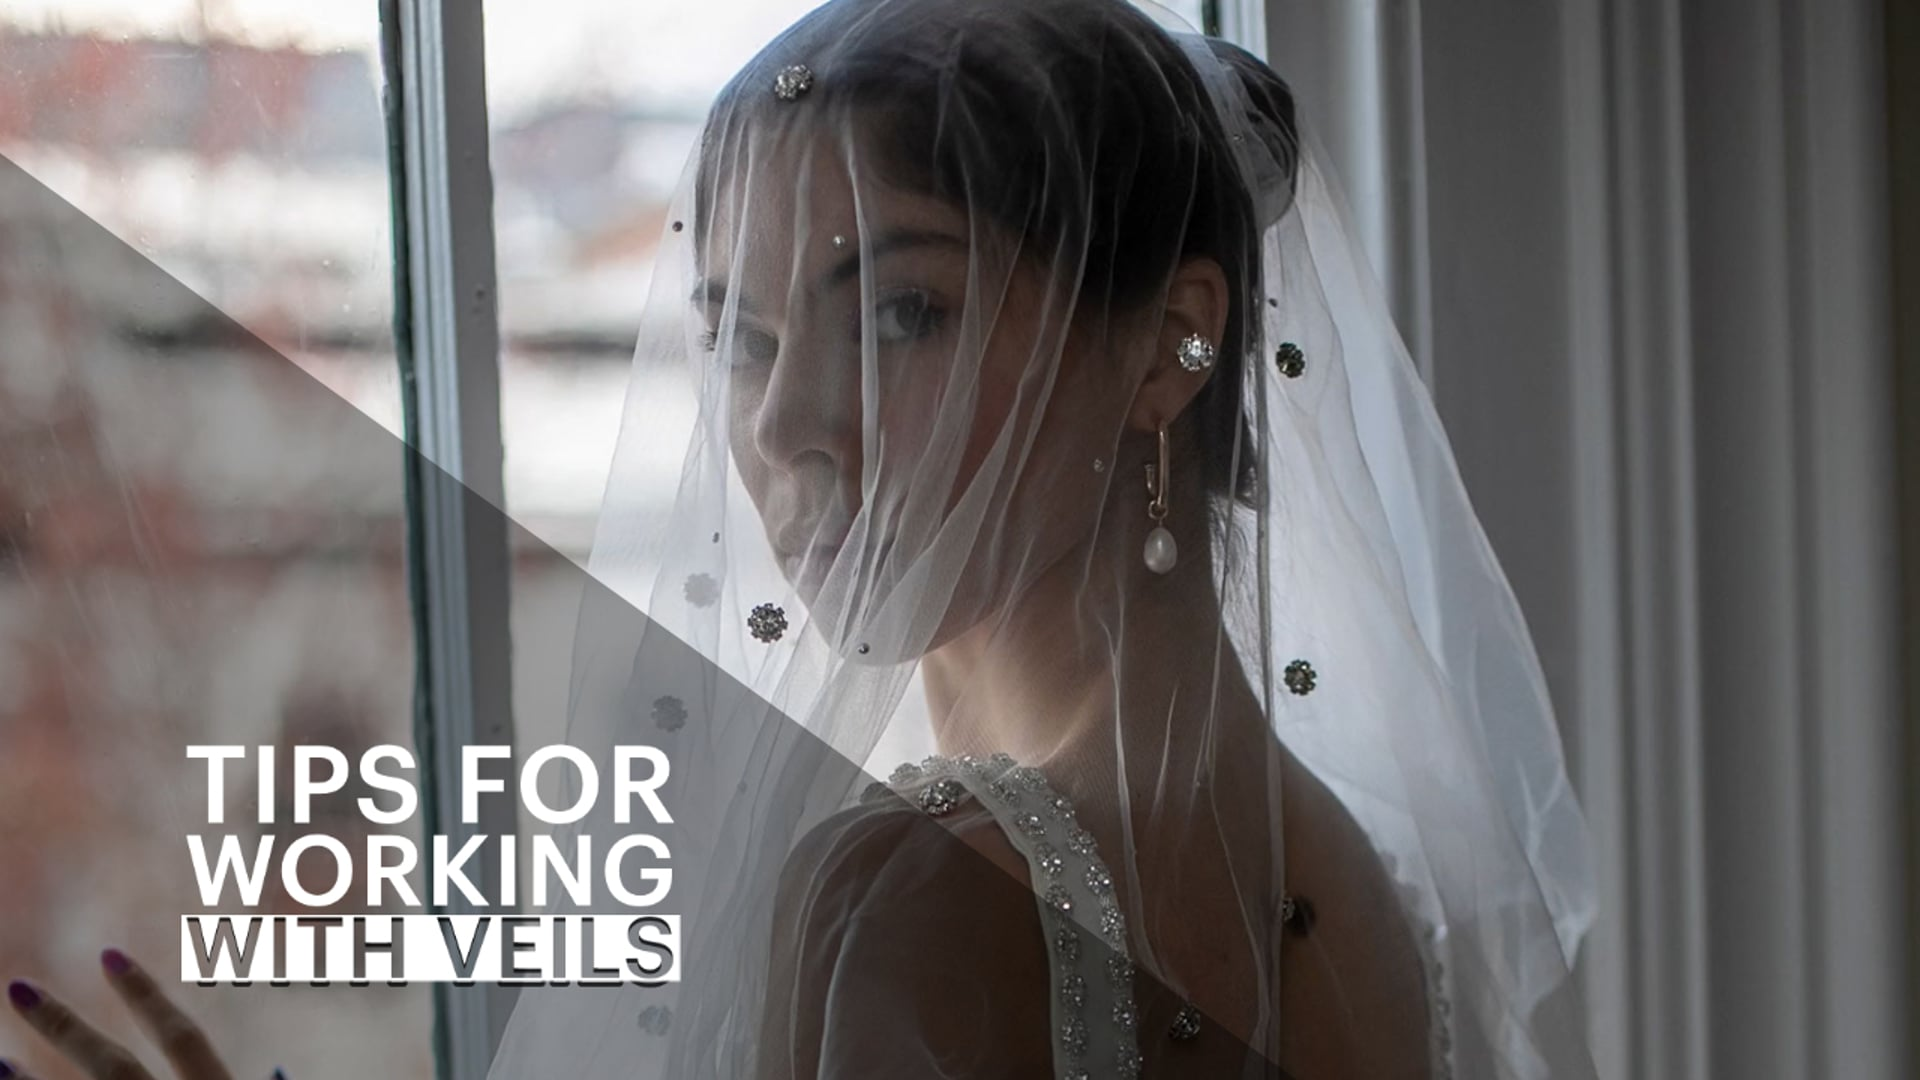 Tips for Working with Veils - vimeo